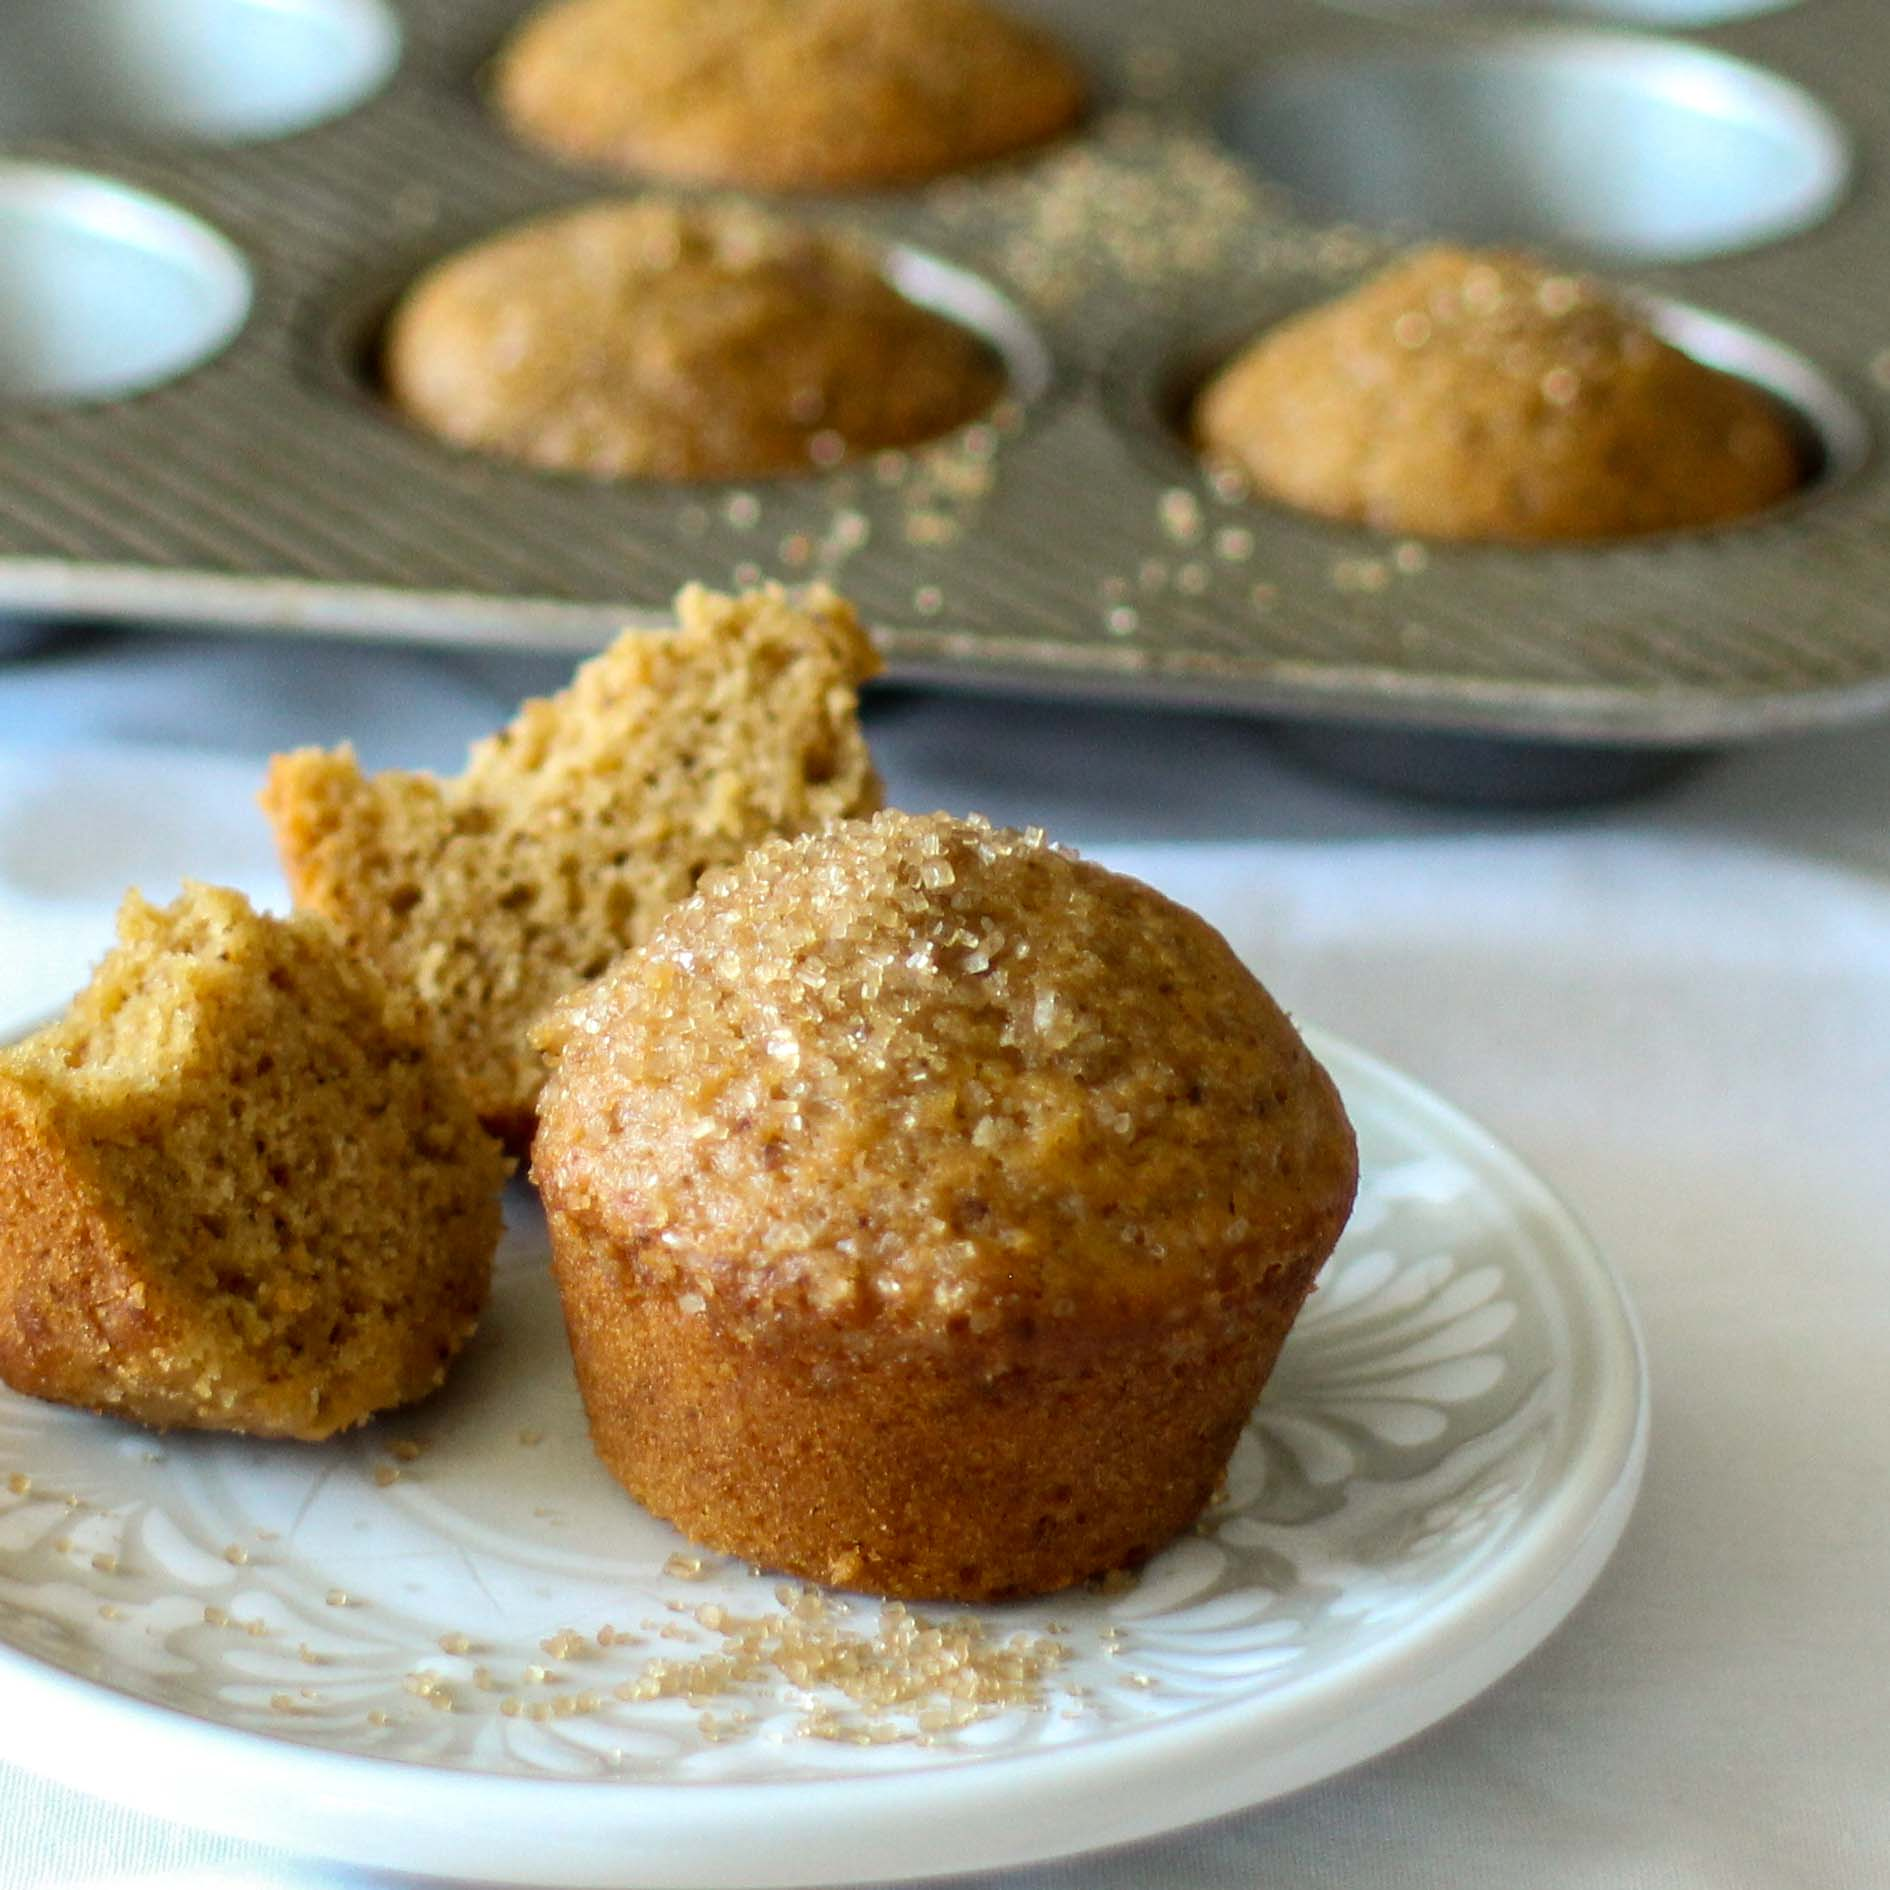 <p>Dried Plum Powder helps bind moisture in gluten-free flour blends, taking the place of xanthan gum. The powder also deepens the sweetness of the muffins.</p>